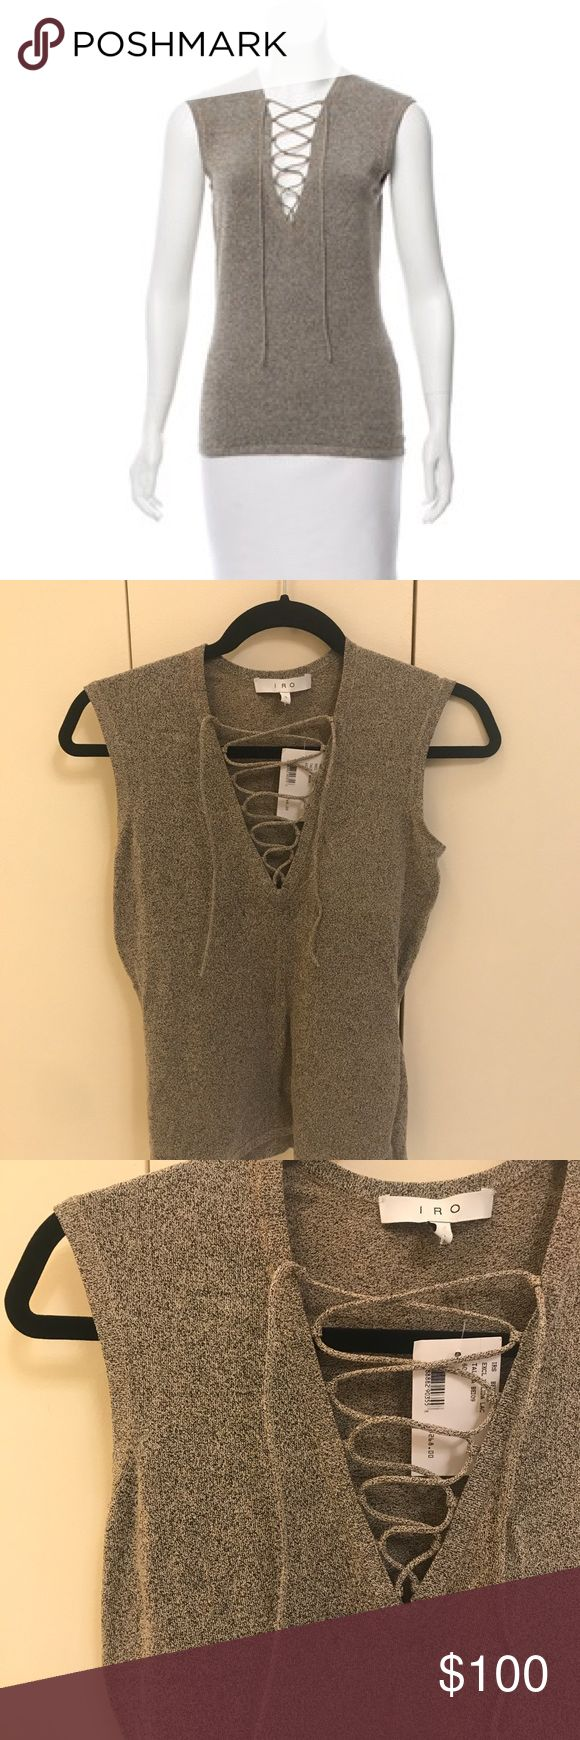 Iro Alida Lace Up Top Brand new, never been worn! Iro Spring Collection lace up sleeveless top; khaki/neutral color; stretchy fit IRO Tops Tees - Short Sleeve